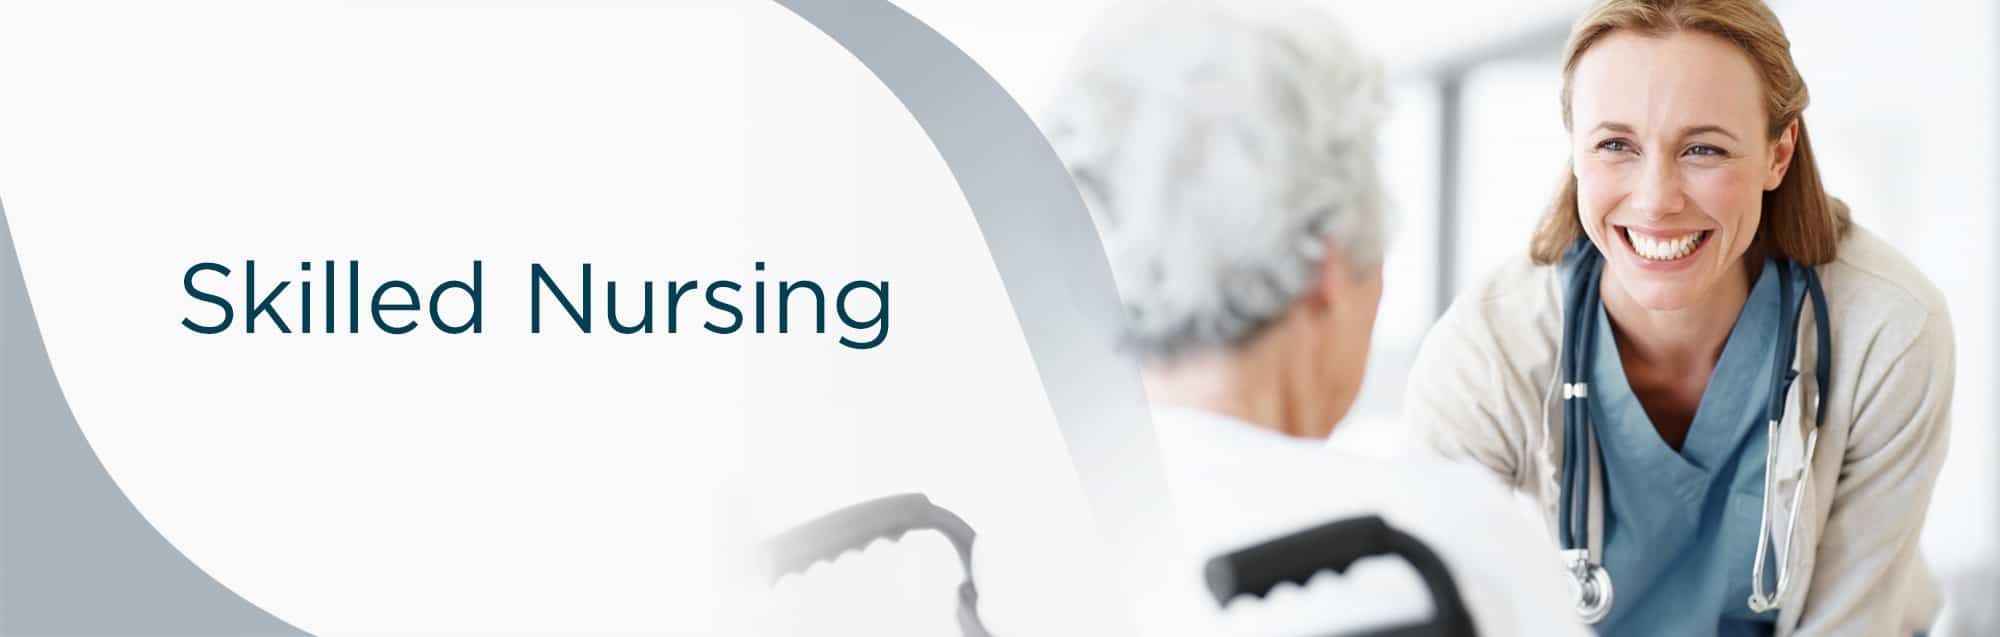 Skilled Nursing at Dow Rummel Village